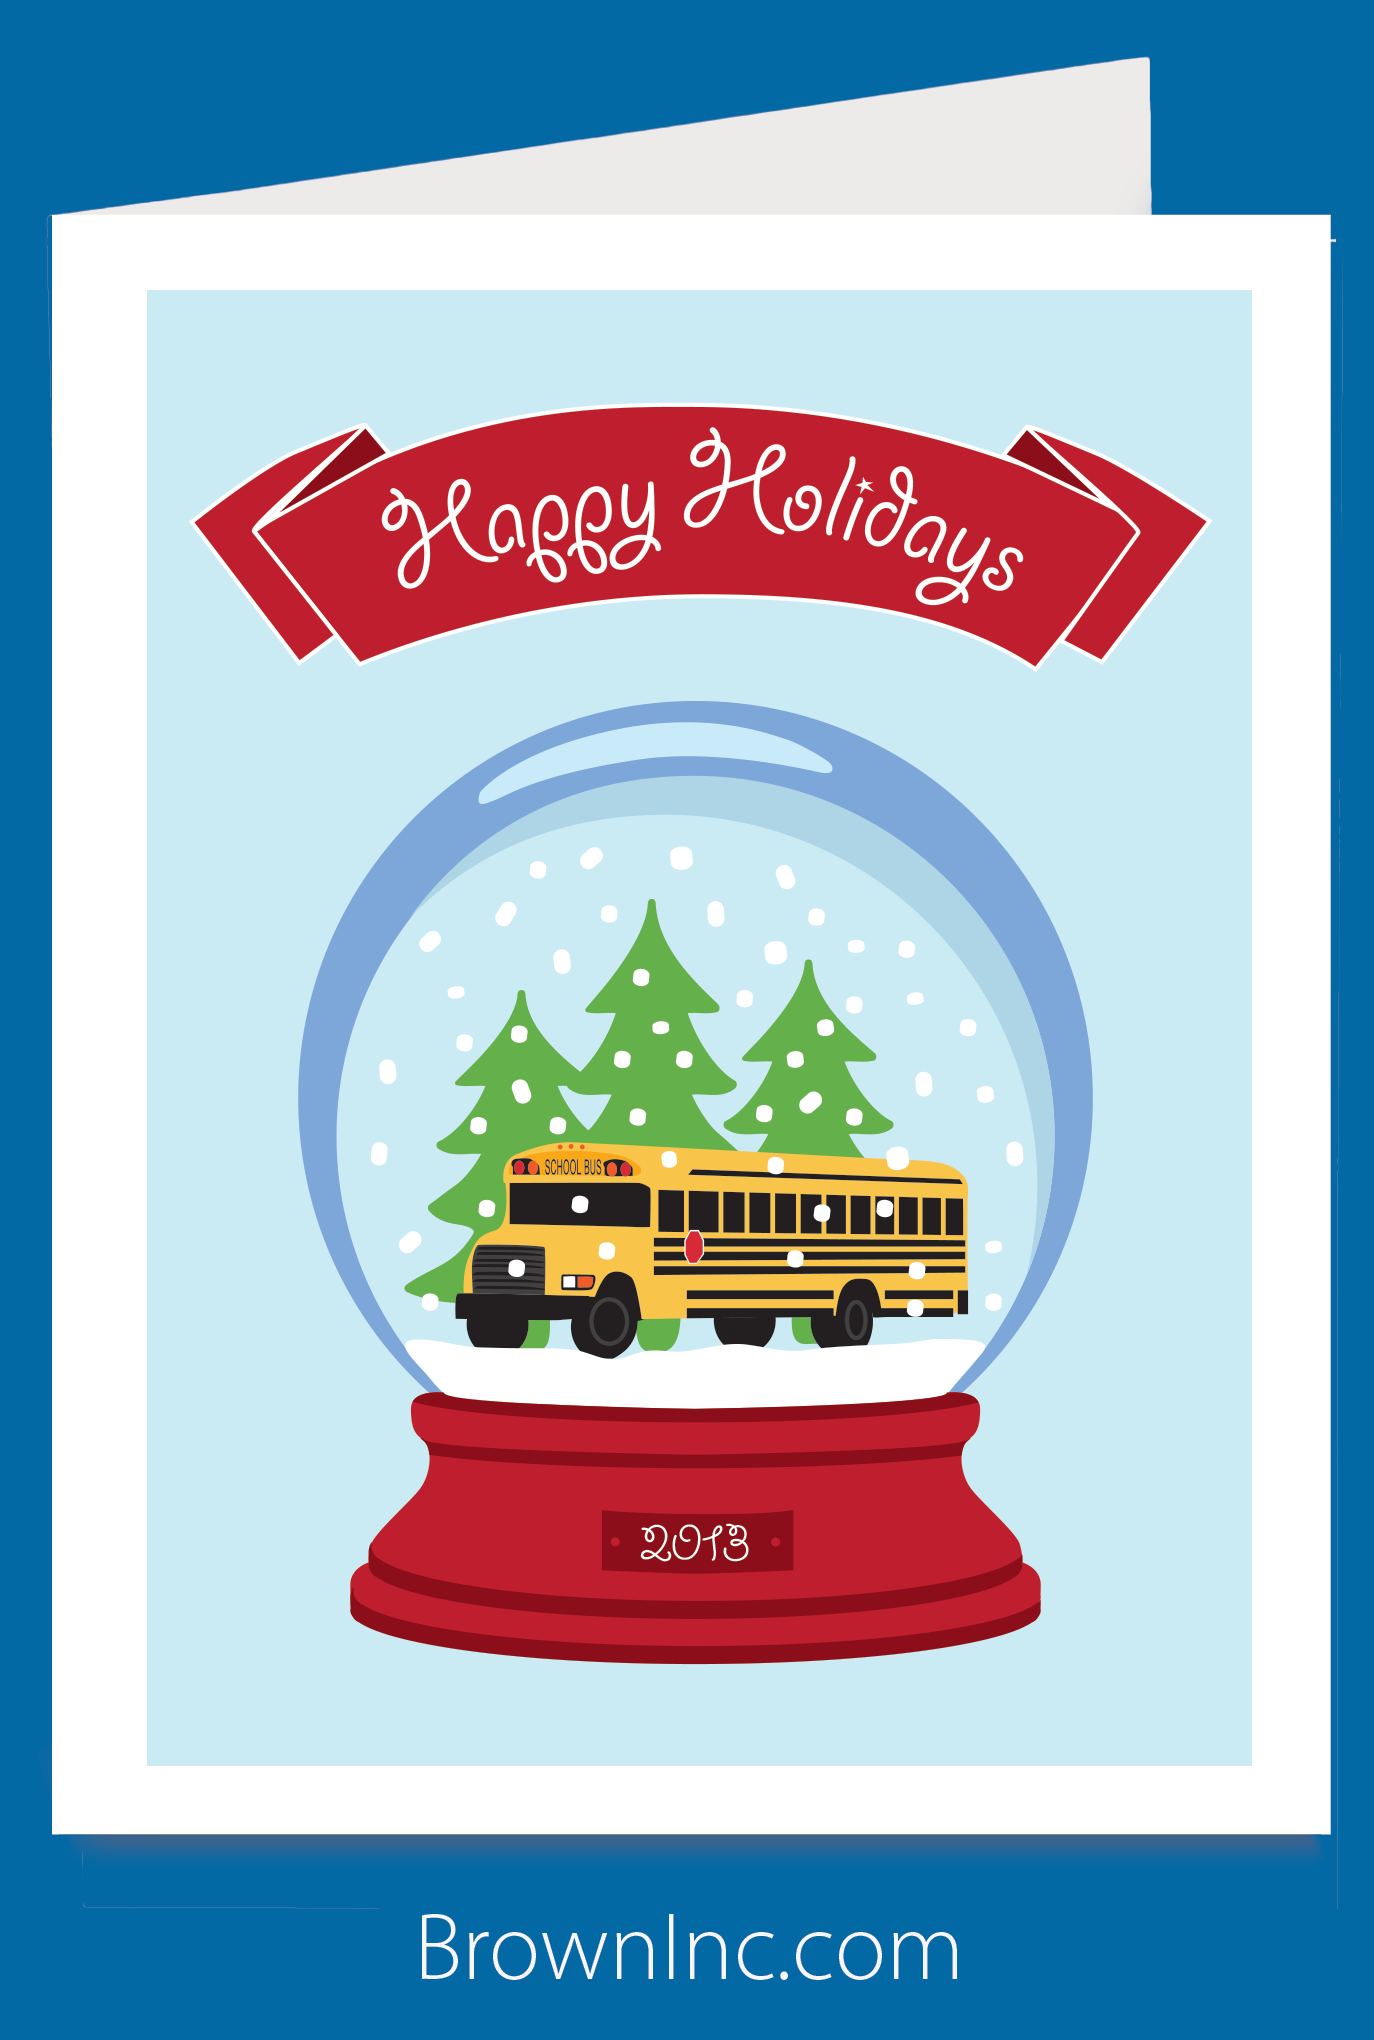 School holiday greeting card popular with teachers staff and of school holiday greeting card popular with teachers staff and of course bus drivers kristyandbryce Gallery